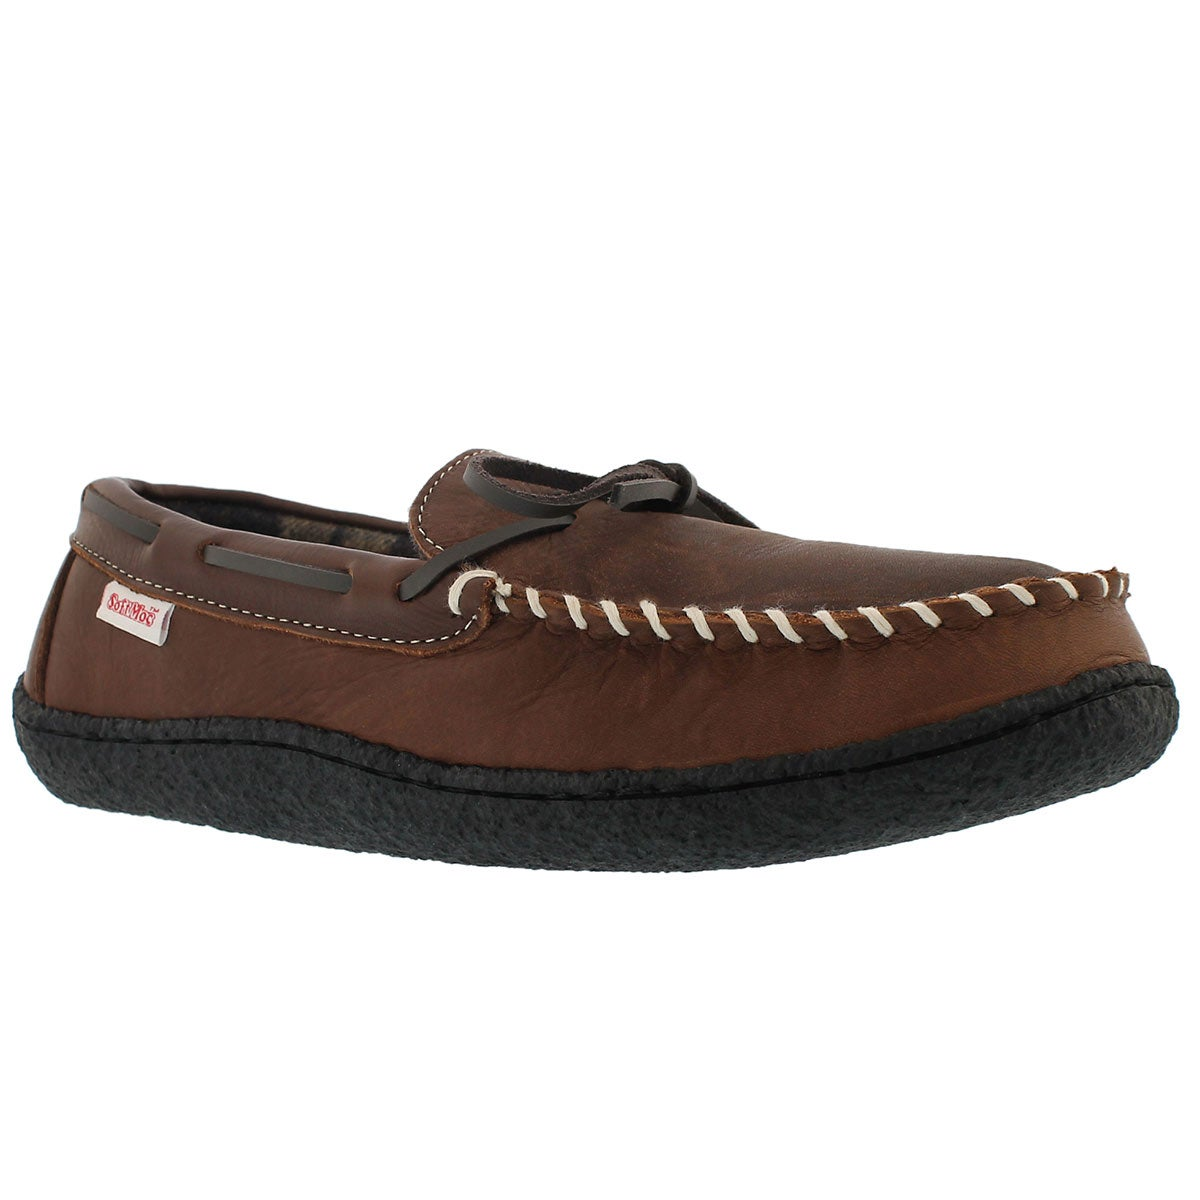 Men's CLOVIS brown lined moccasins